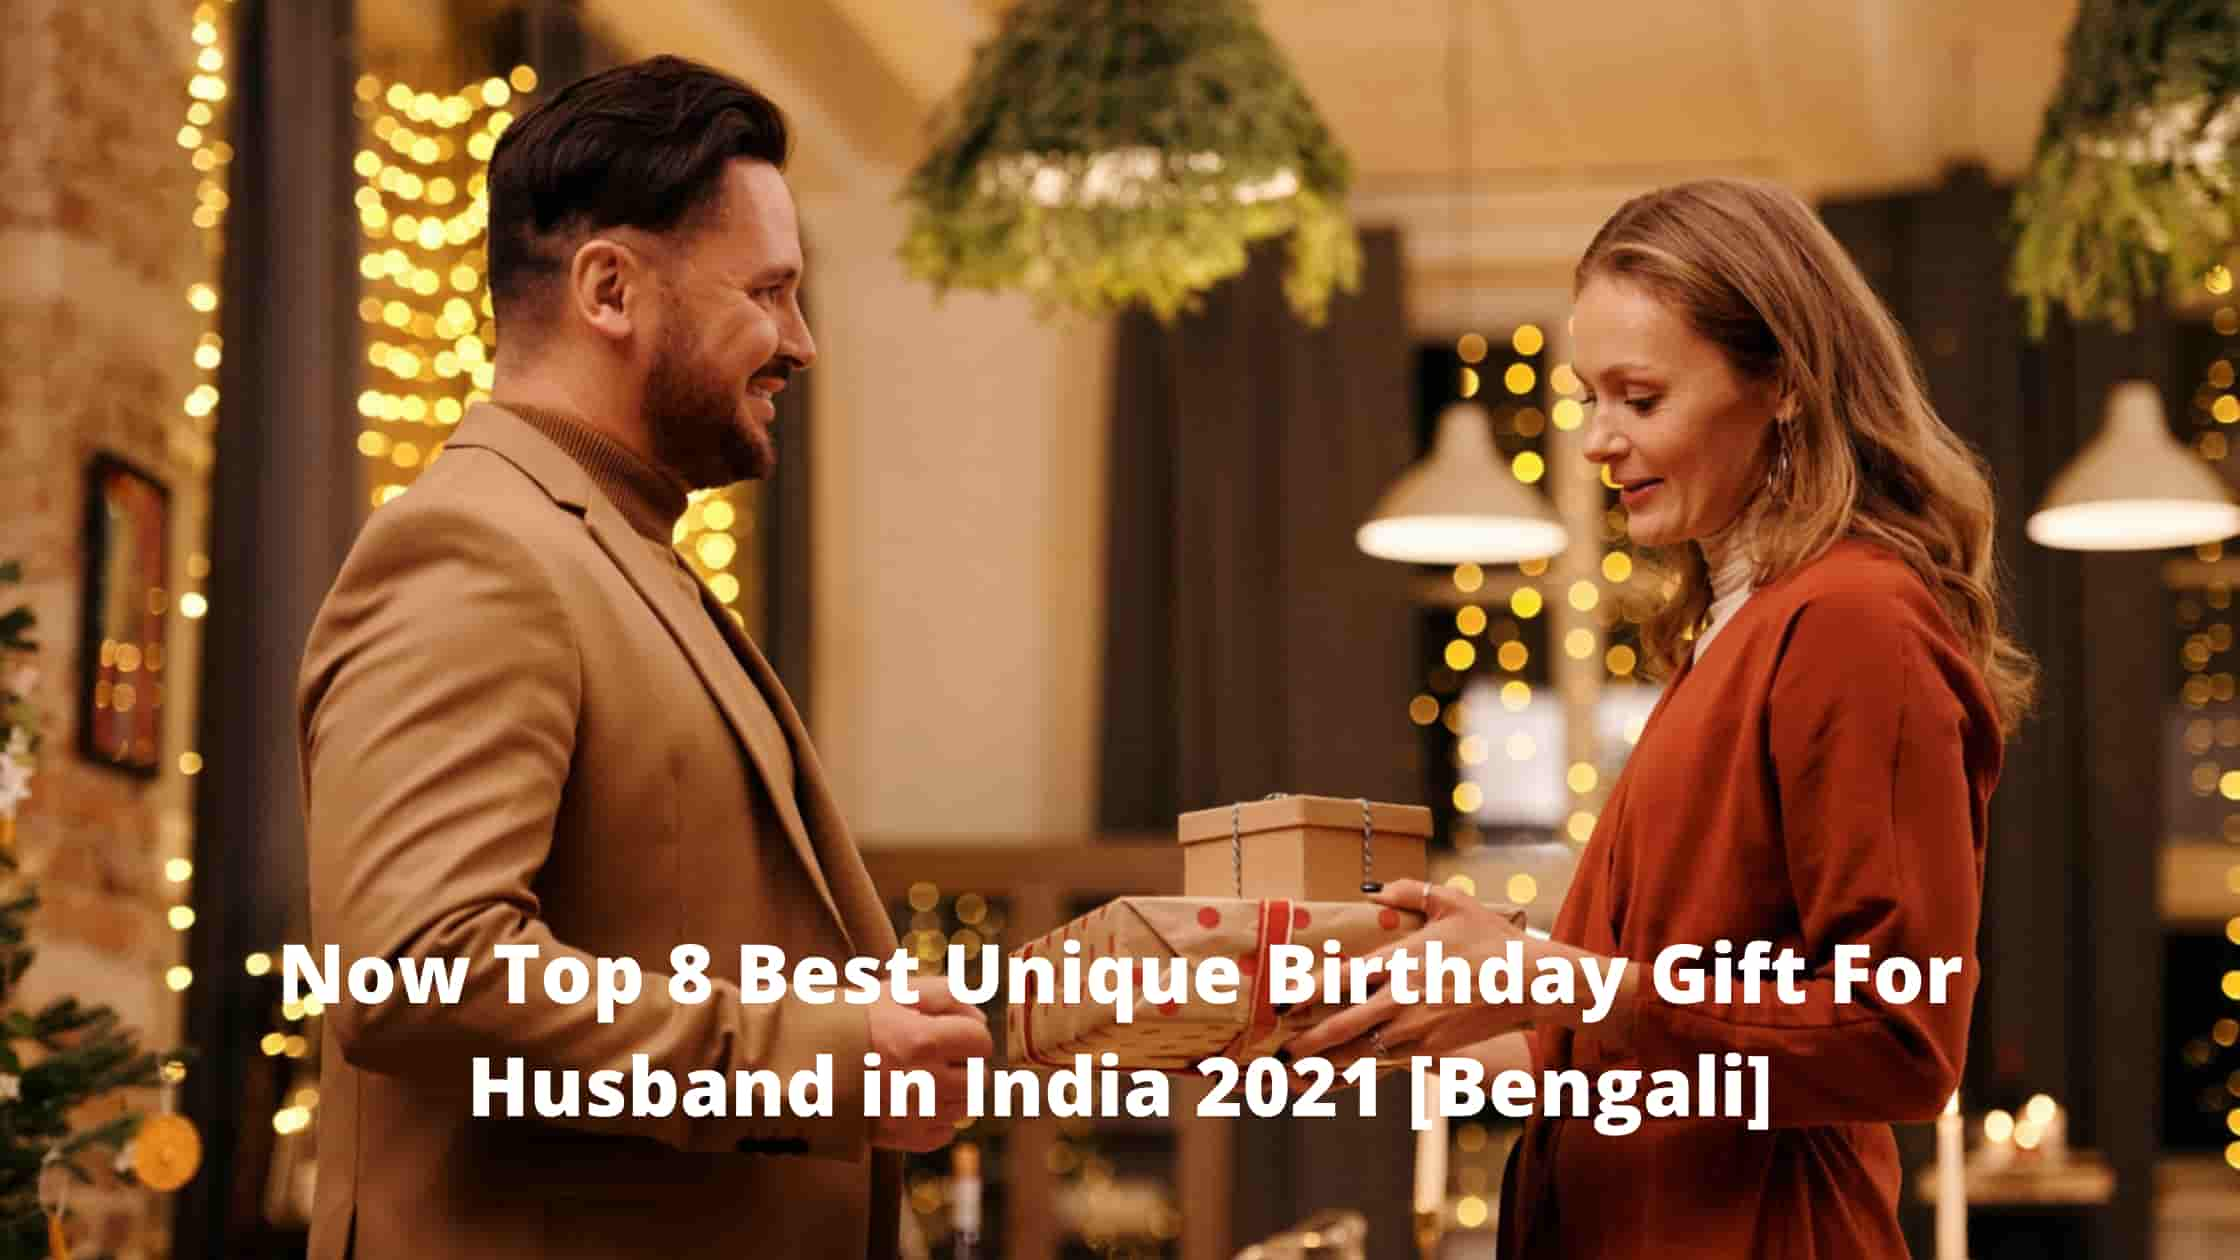 Now Top 8 Best Unique Birthday Gift For Husband in India 2021 [Bengali]